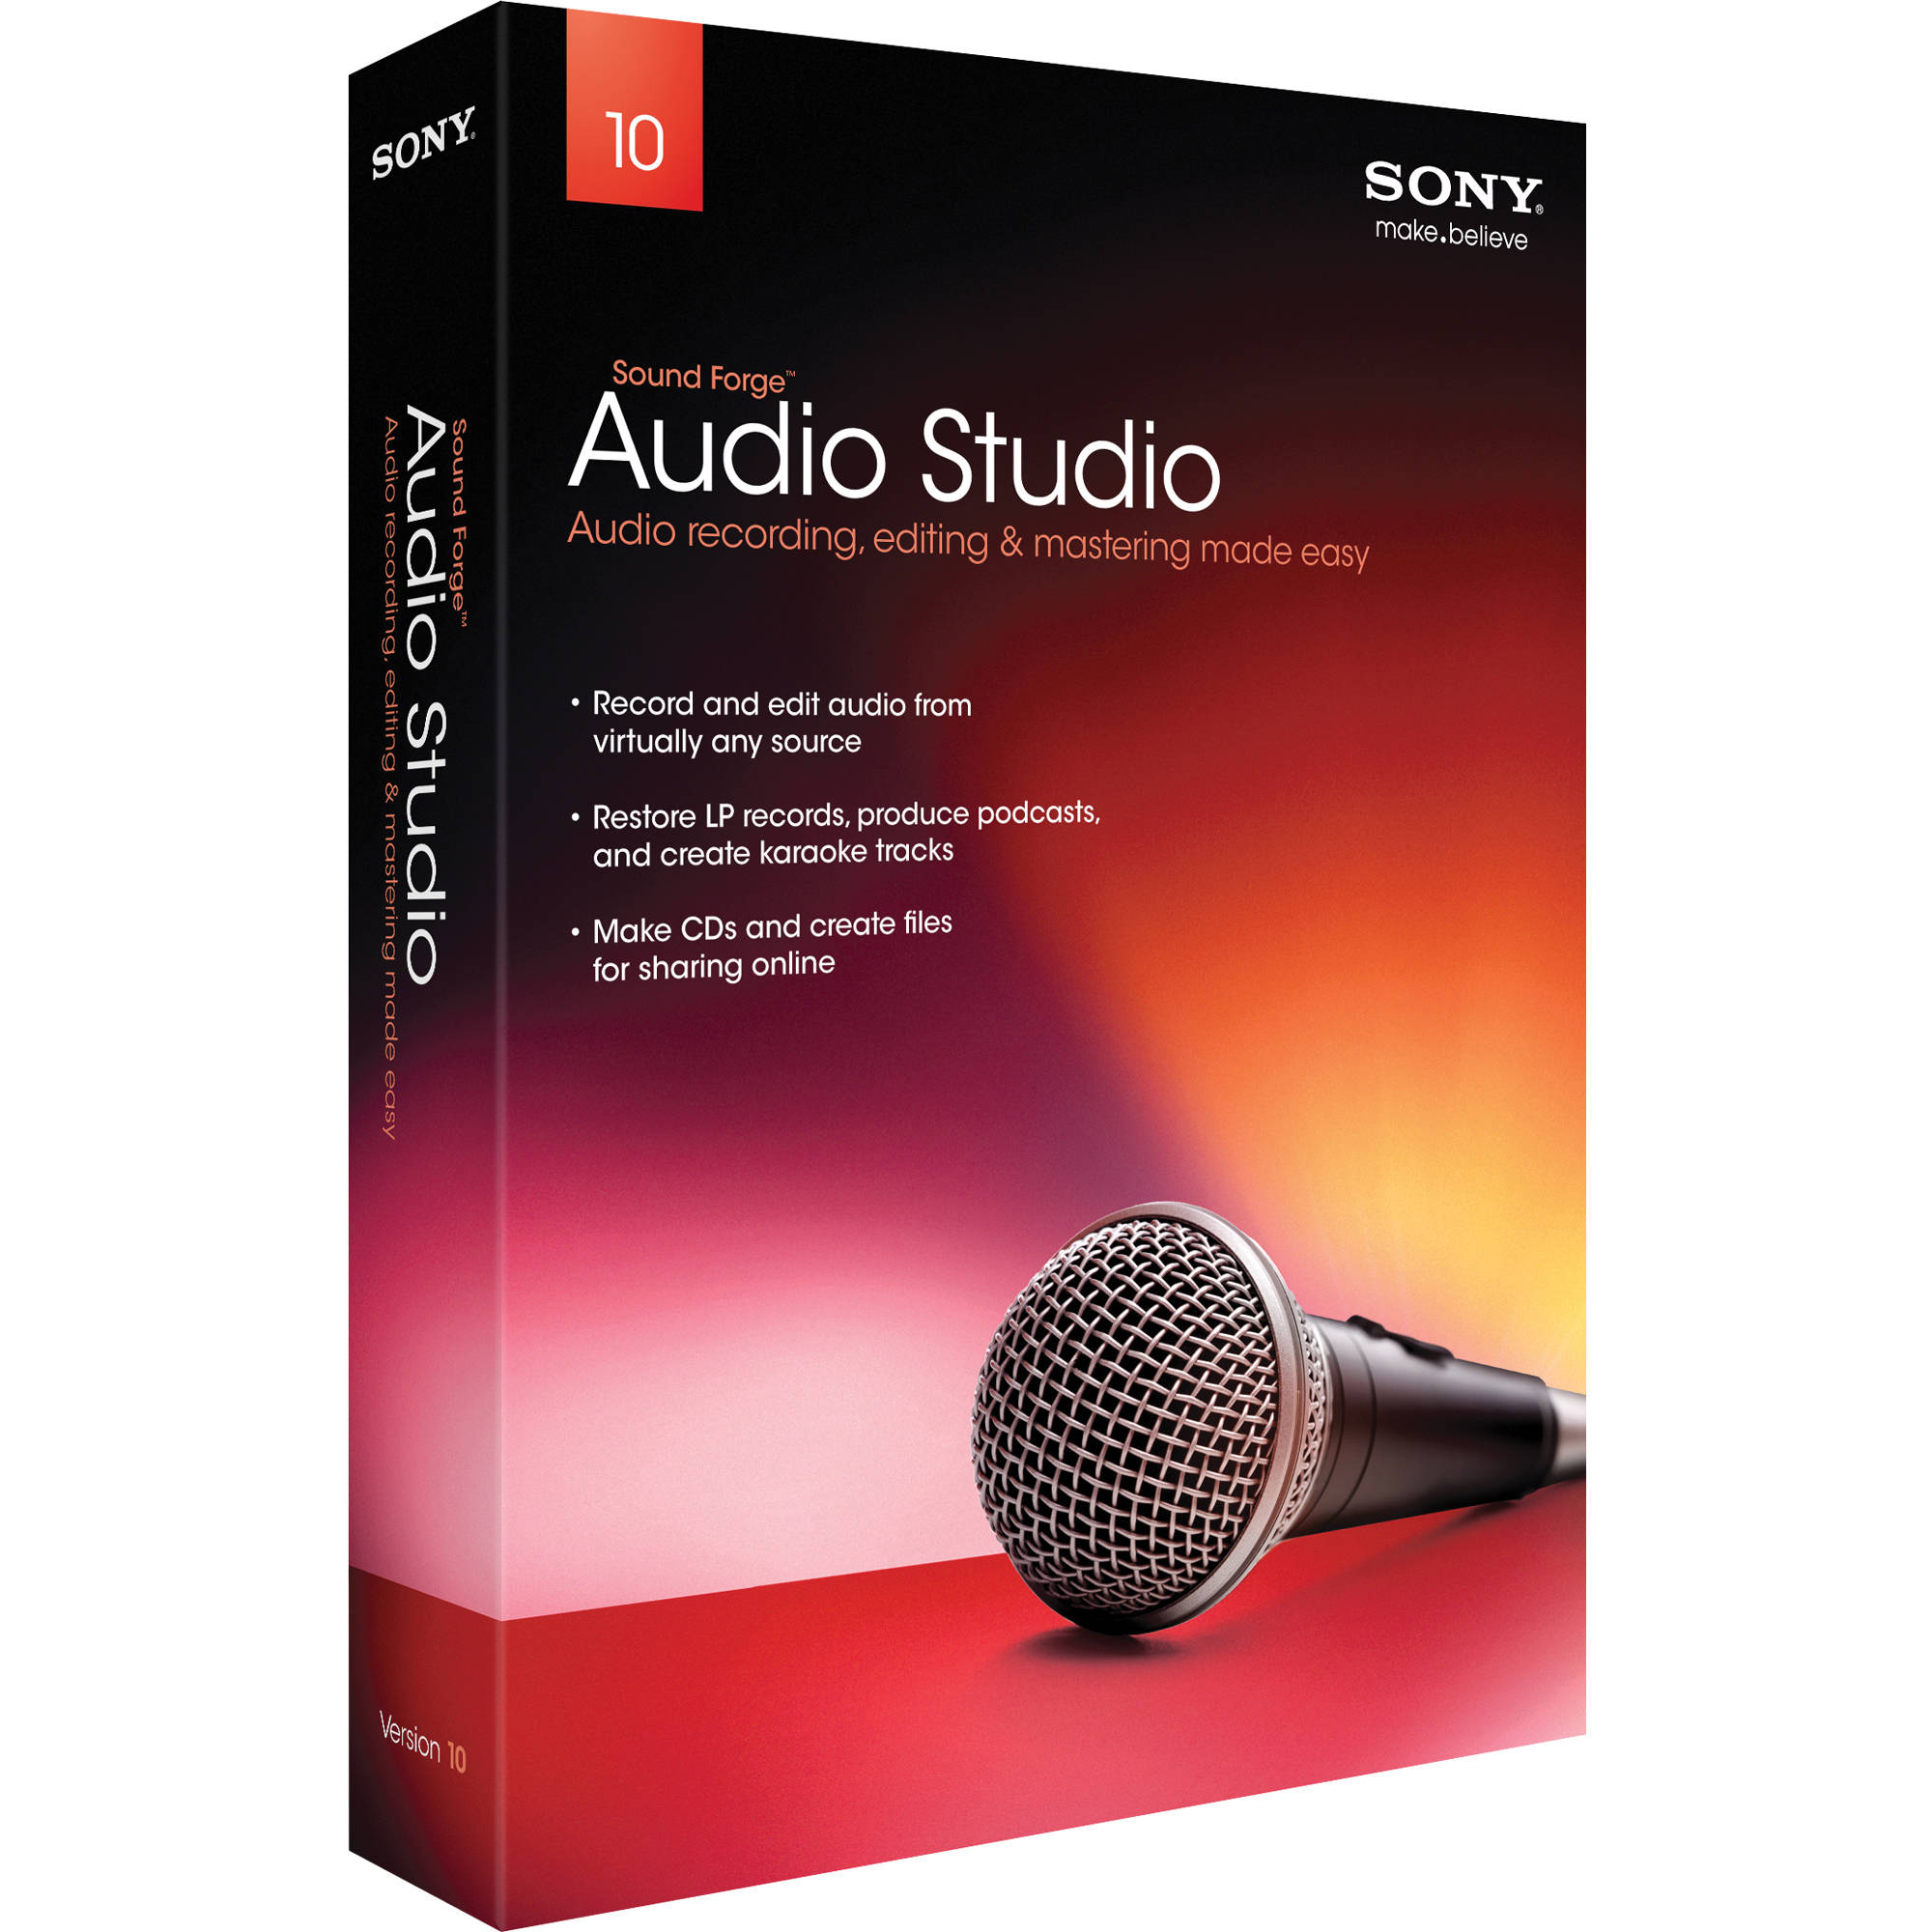 Sony sound forge audio studio v10.0 build 152 kgn